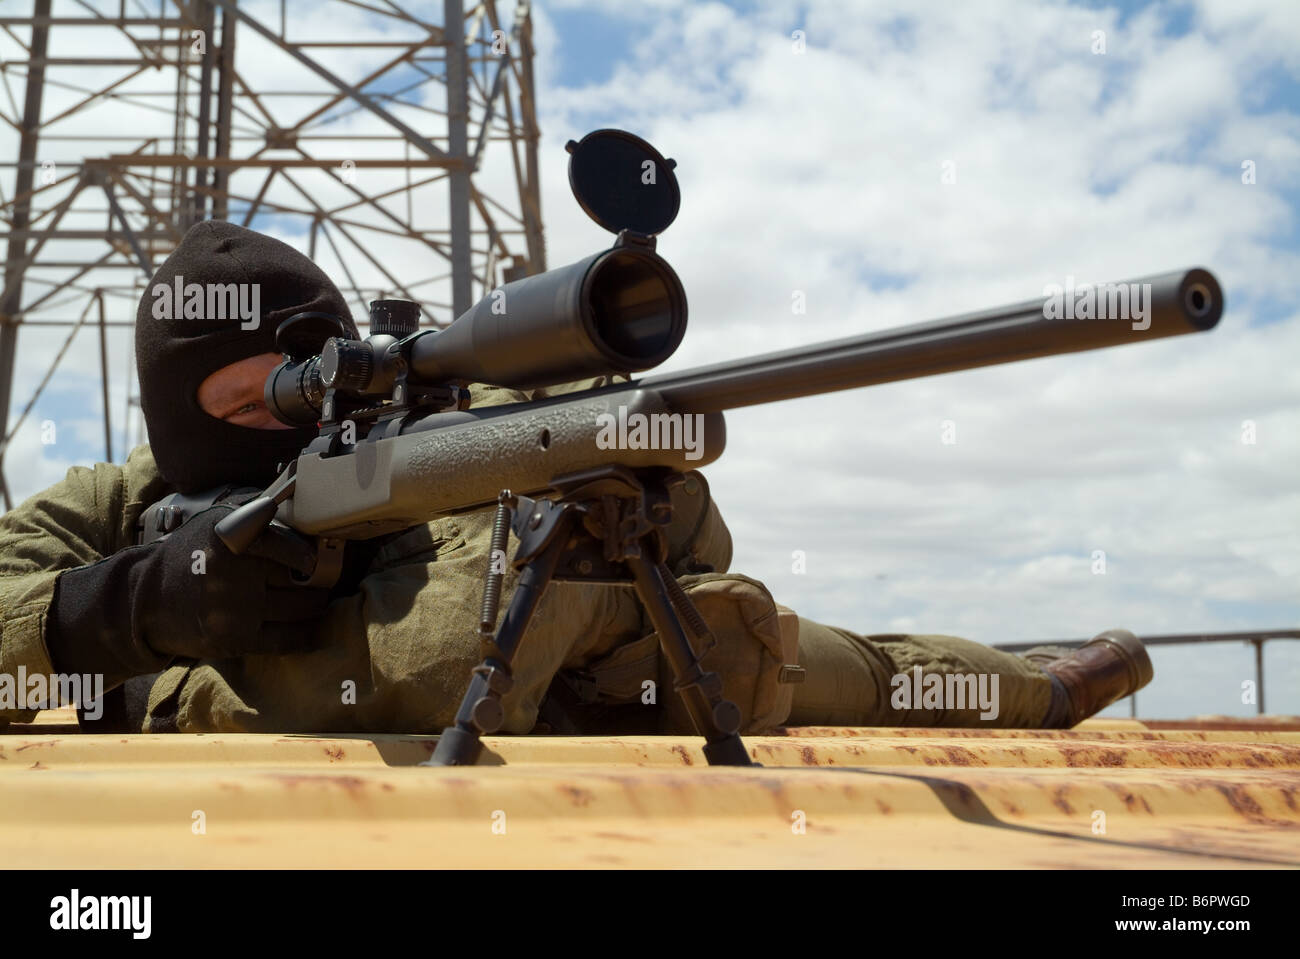 Special forces sniper ready to take shot - Stock Image